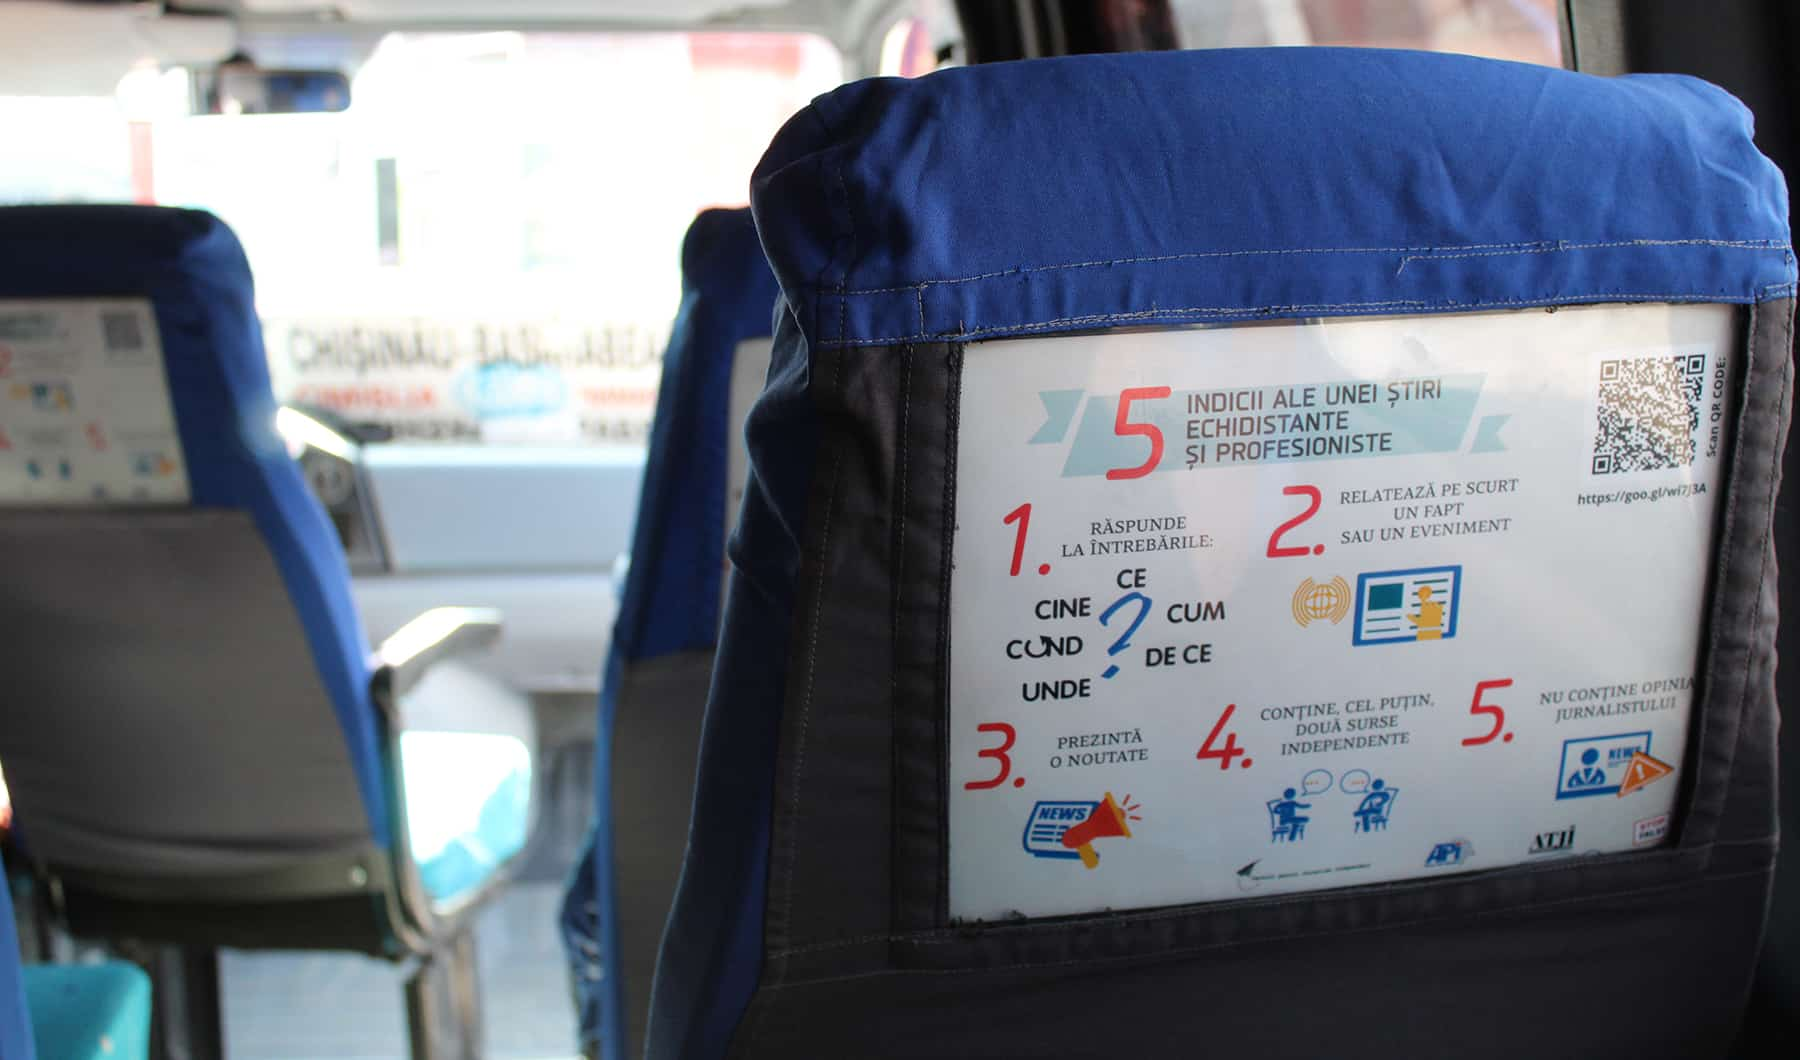 A poster is applied to the back of a seat in a mini bus